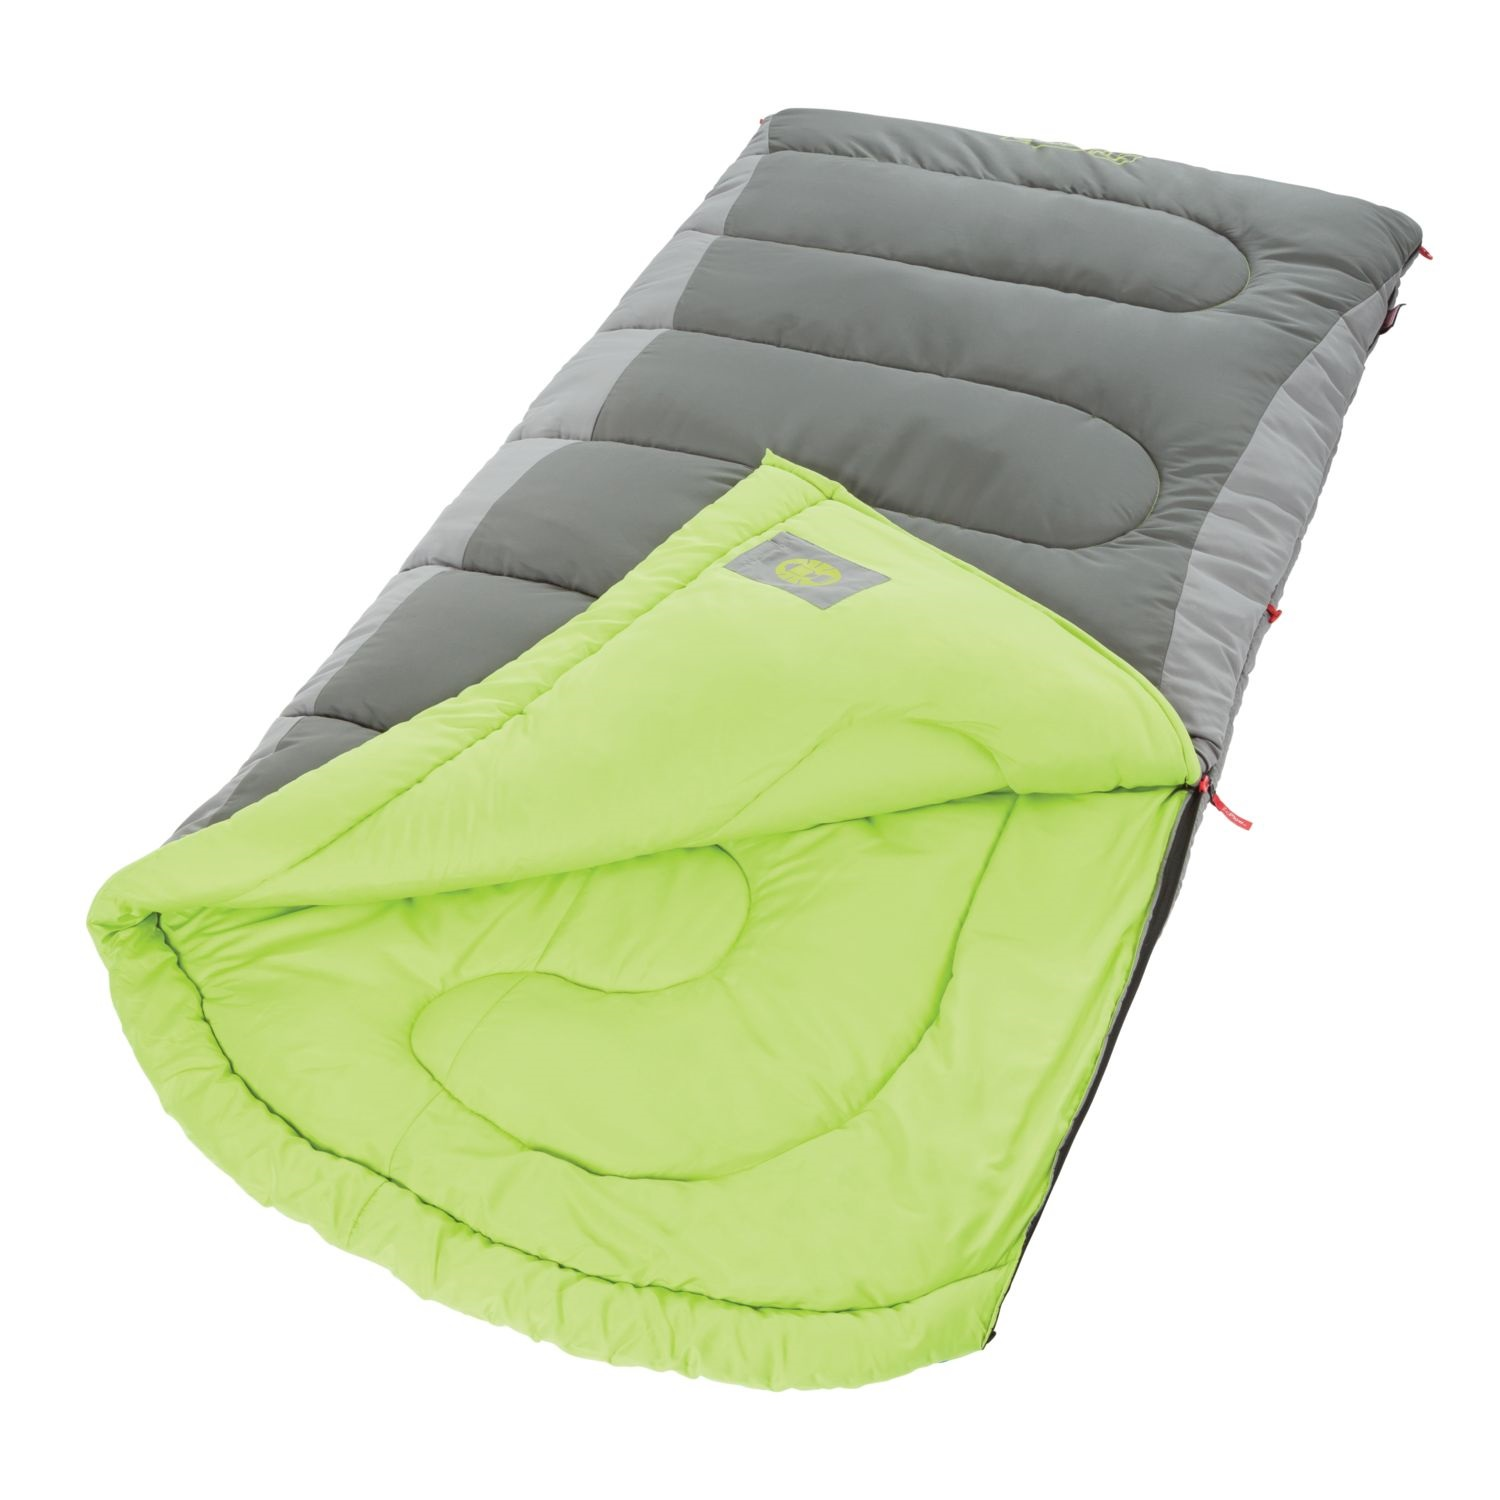 How to roll Coleman Big Game sleeping bag with